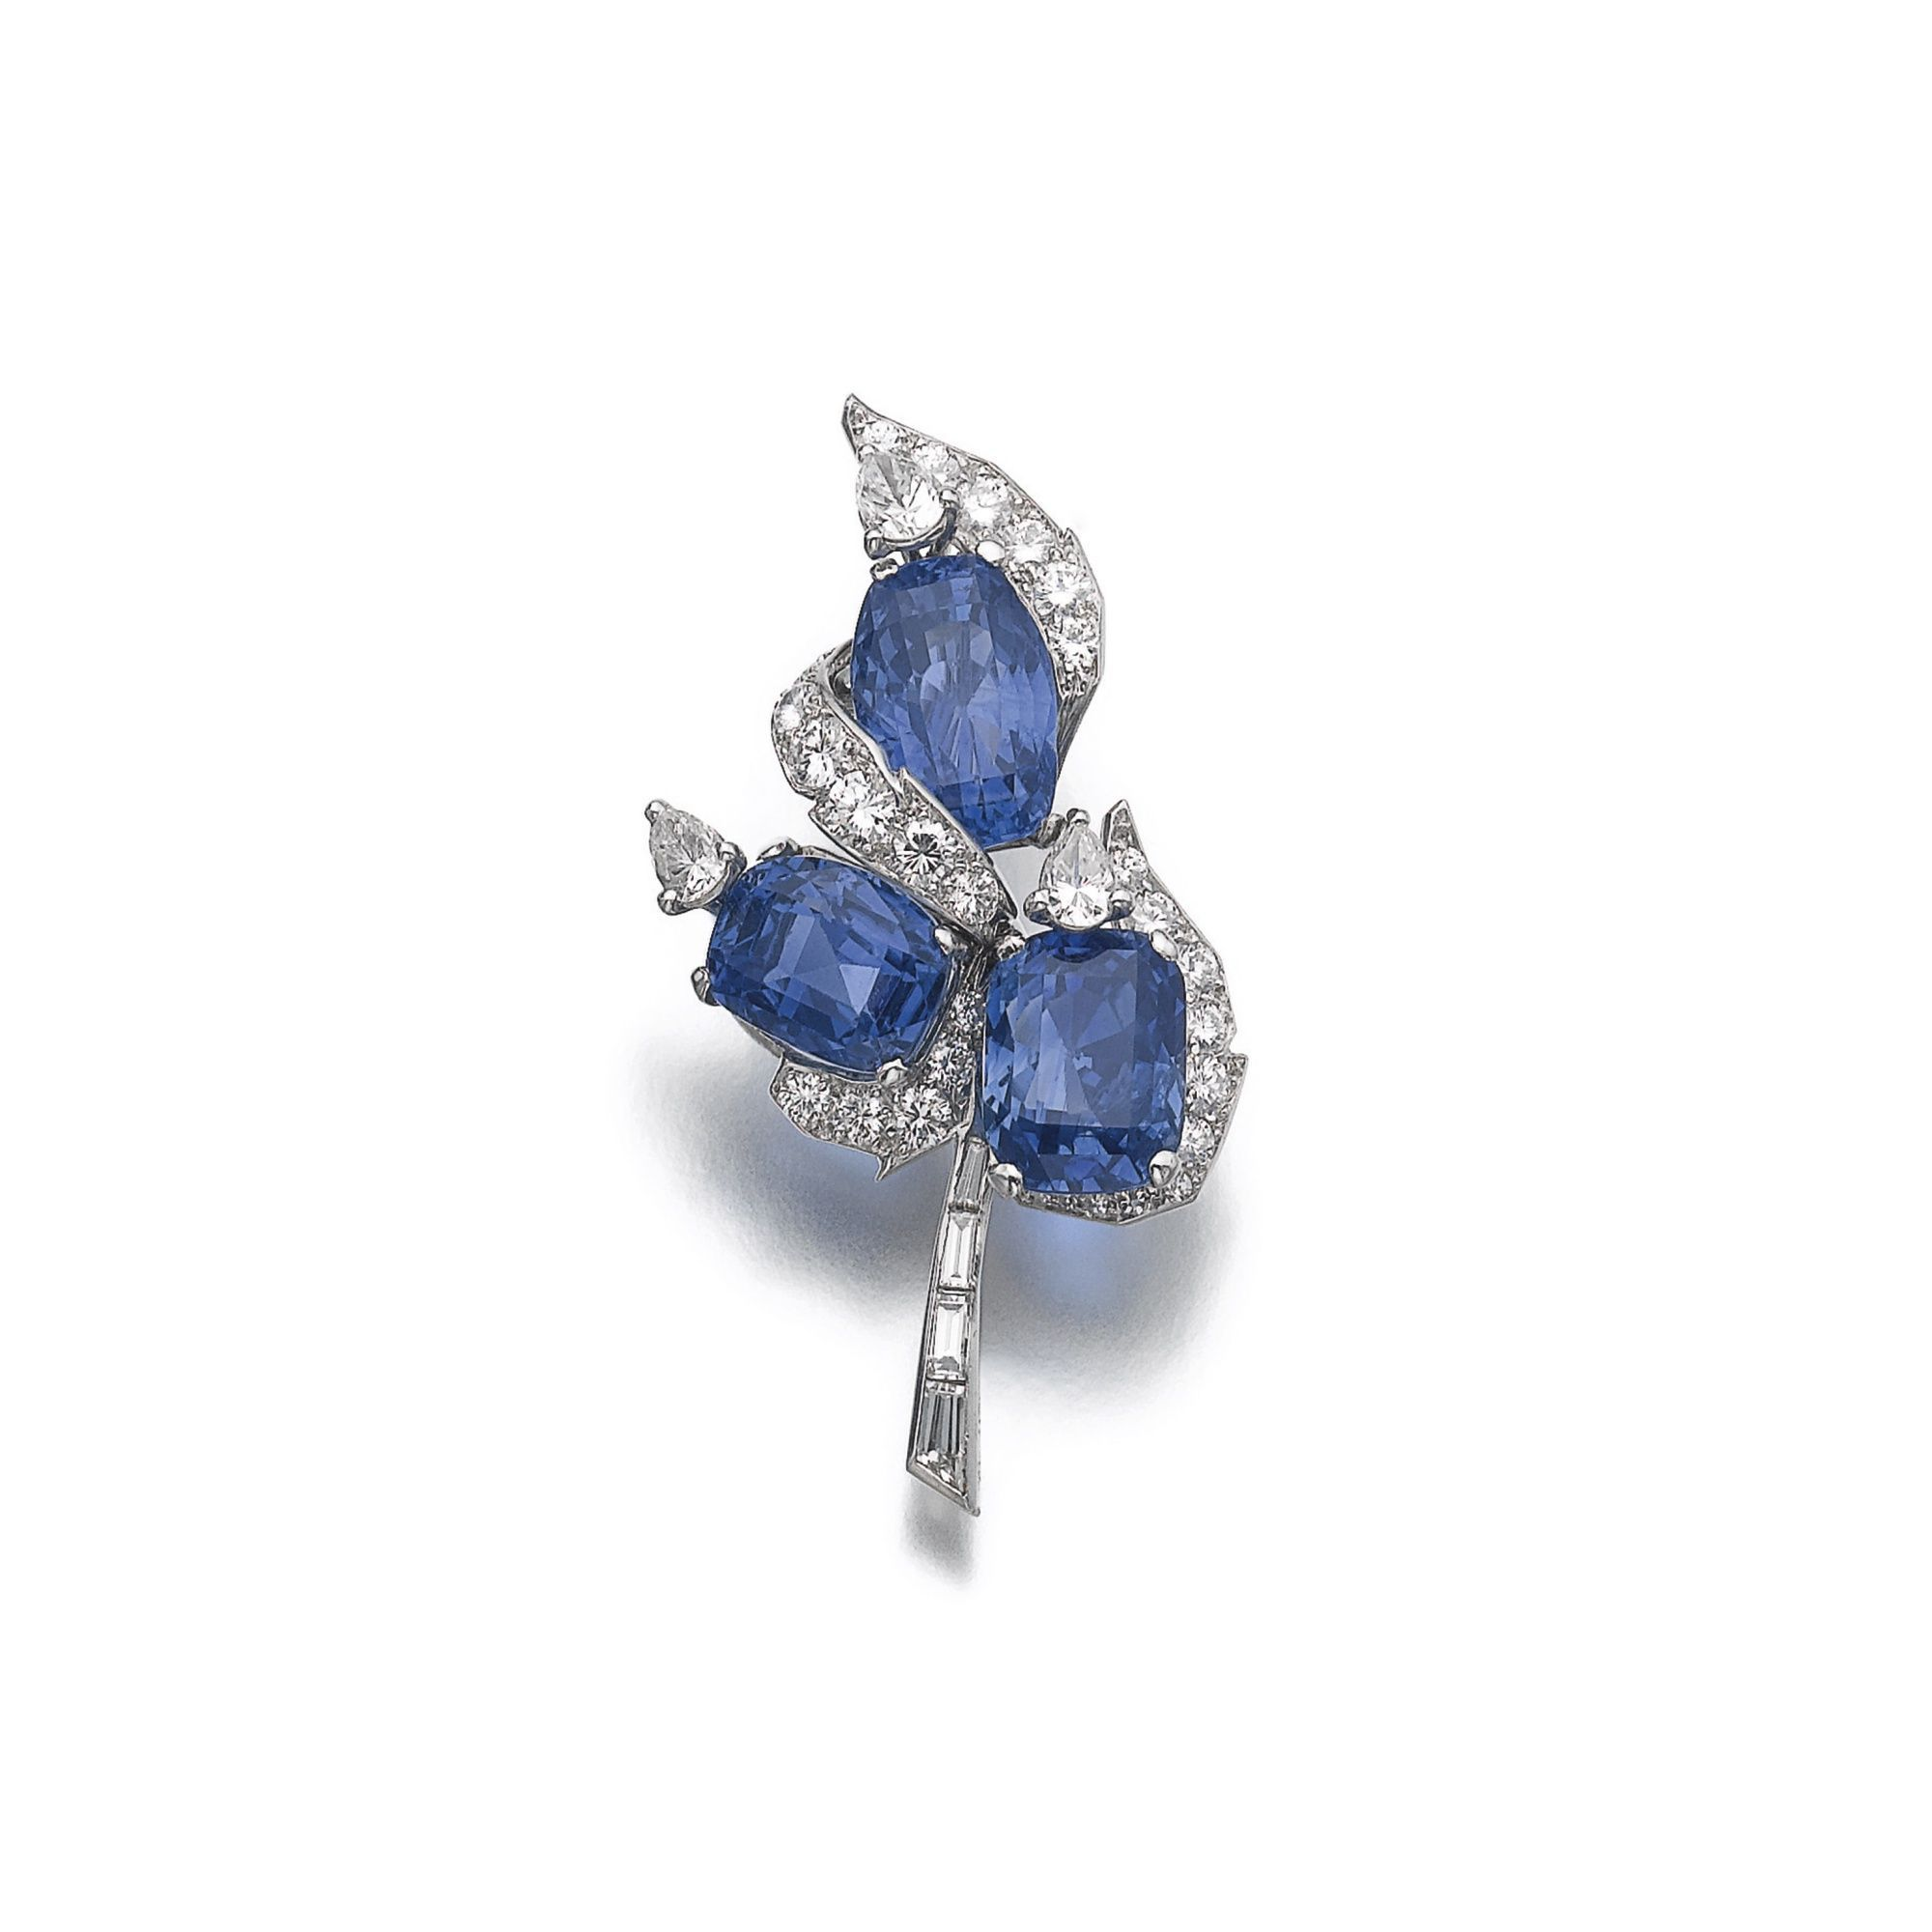 cartier noble geneva magnificent s kashmir auction at jewels lot sapphire diamond records gb and sothebys brooch en sotheby